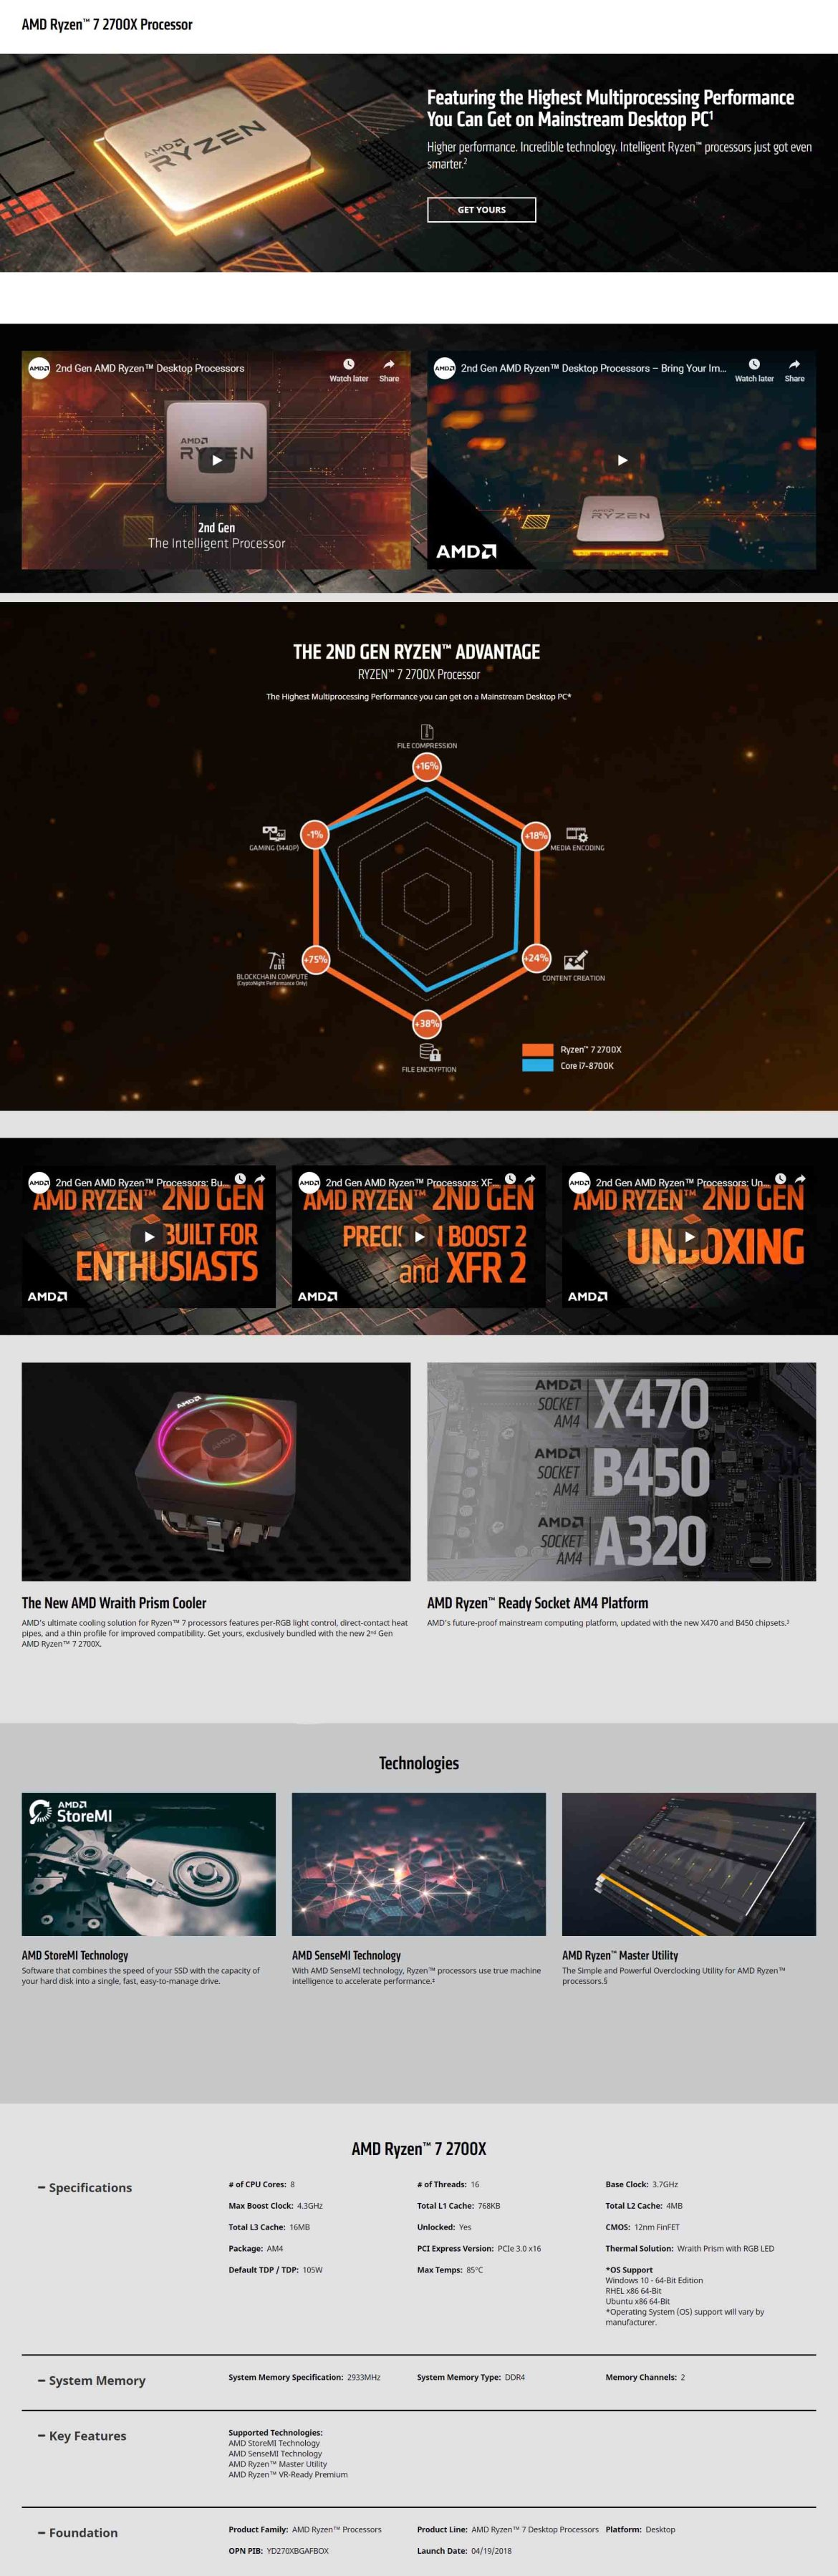 AMD Ryzen 7 2700X Desktop Processor With Highest Multiprocessing Performance